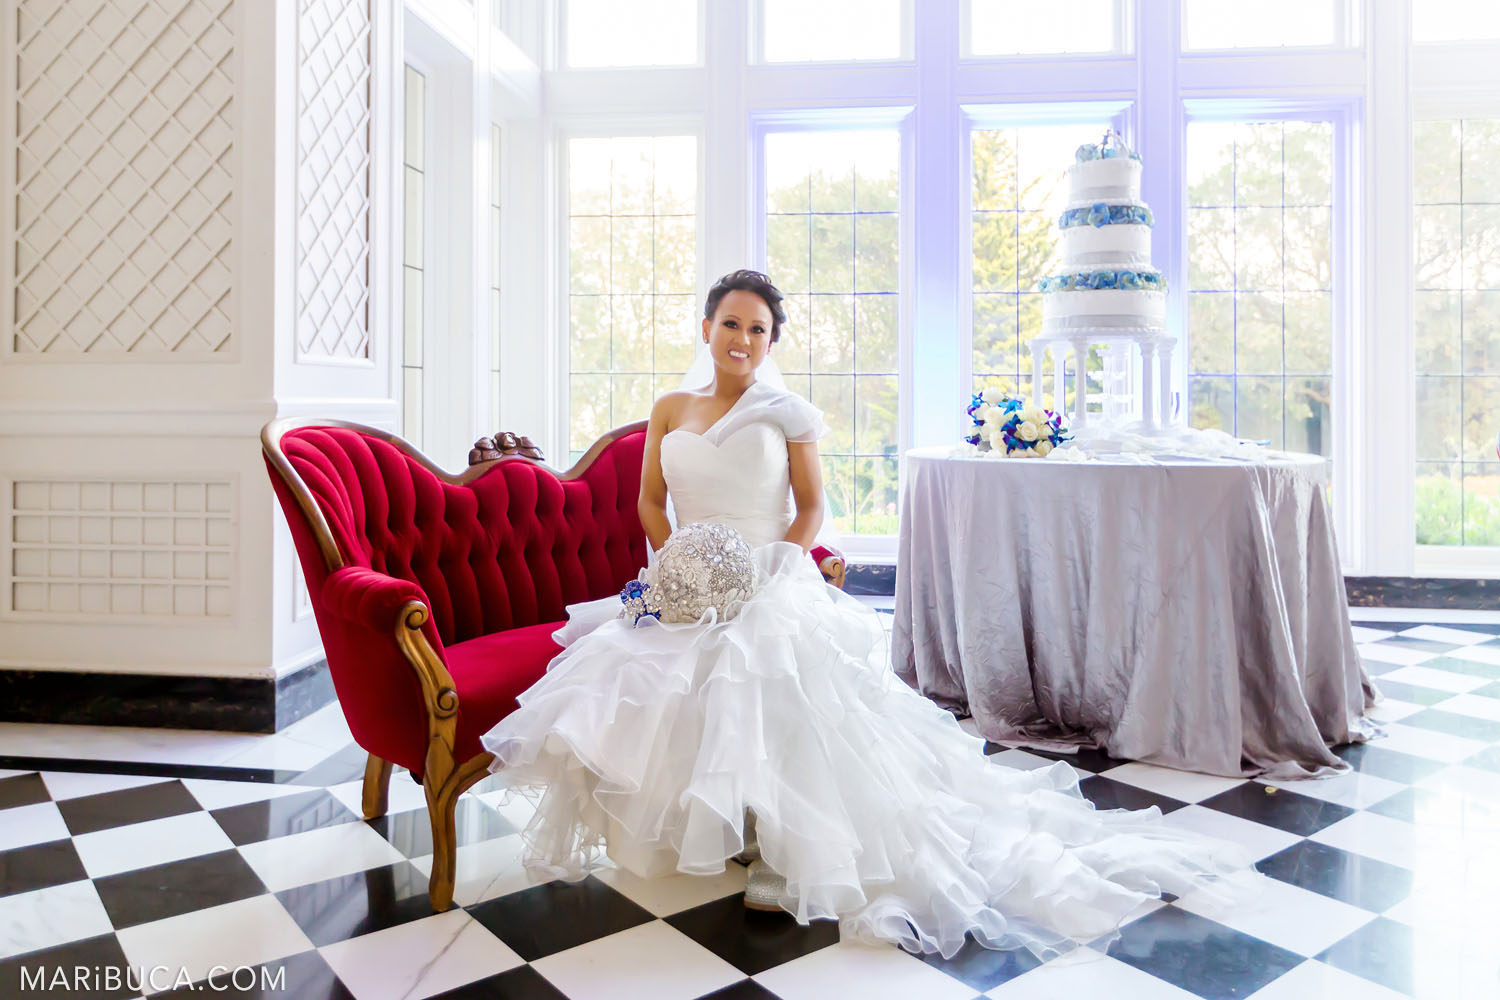 Gorgeous bride sits in the red couch around the Morning Room with big high windows, white walls and white three-stores wedding cake in the Kohl Mansion, Burlingame